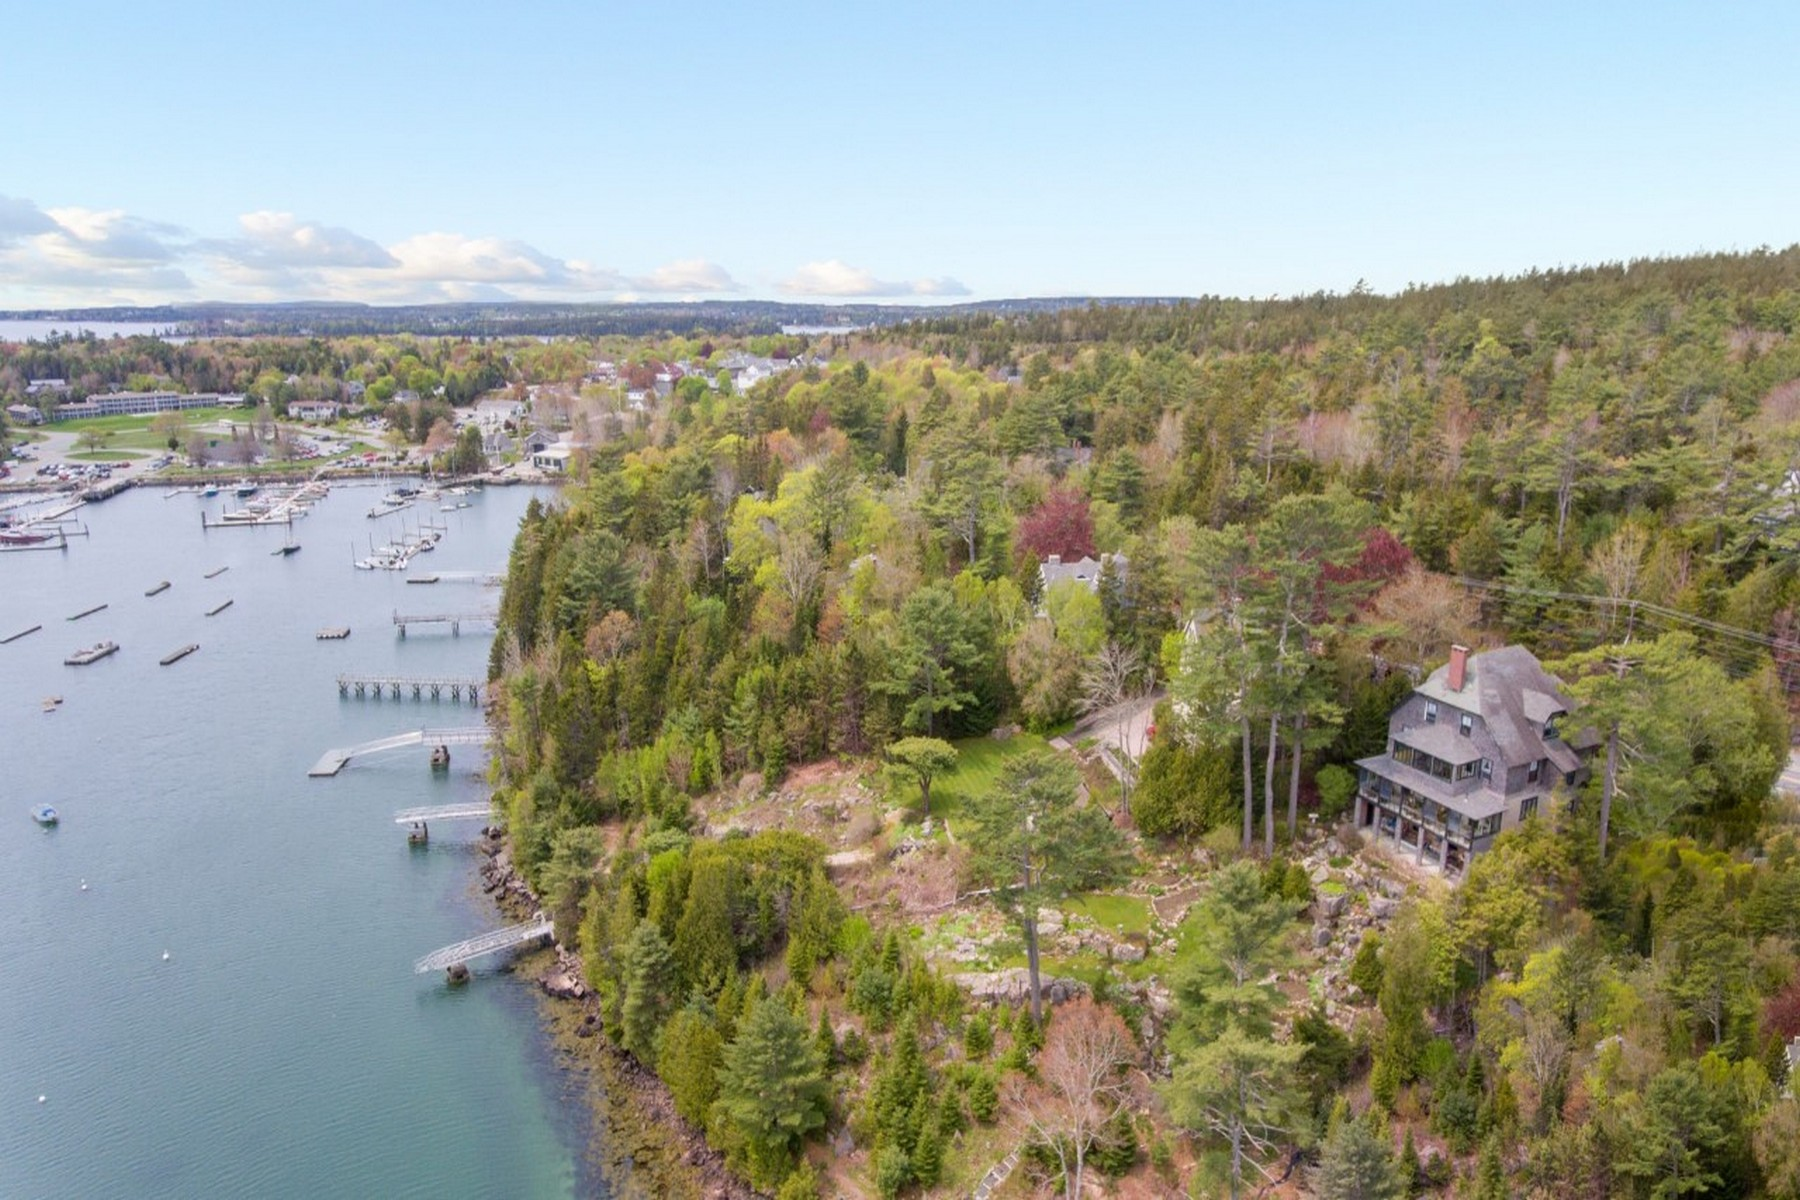 Single Family Homes for Sale at Fermata 65 Harborside Road, Northeast Harbor, Maine 04662 United States